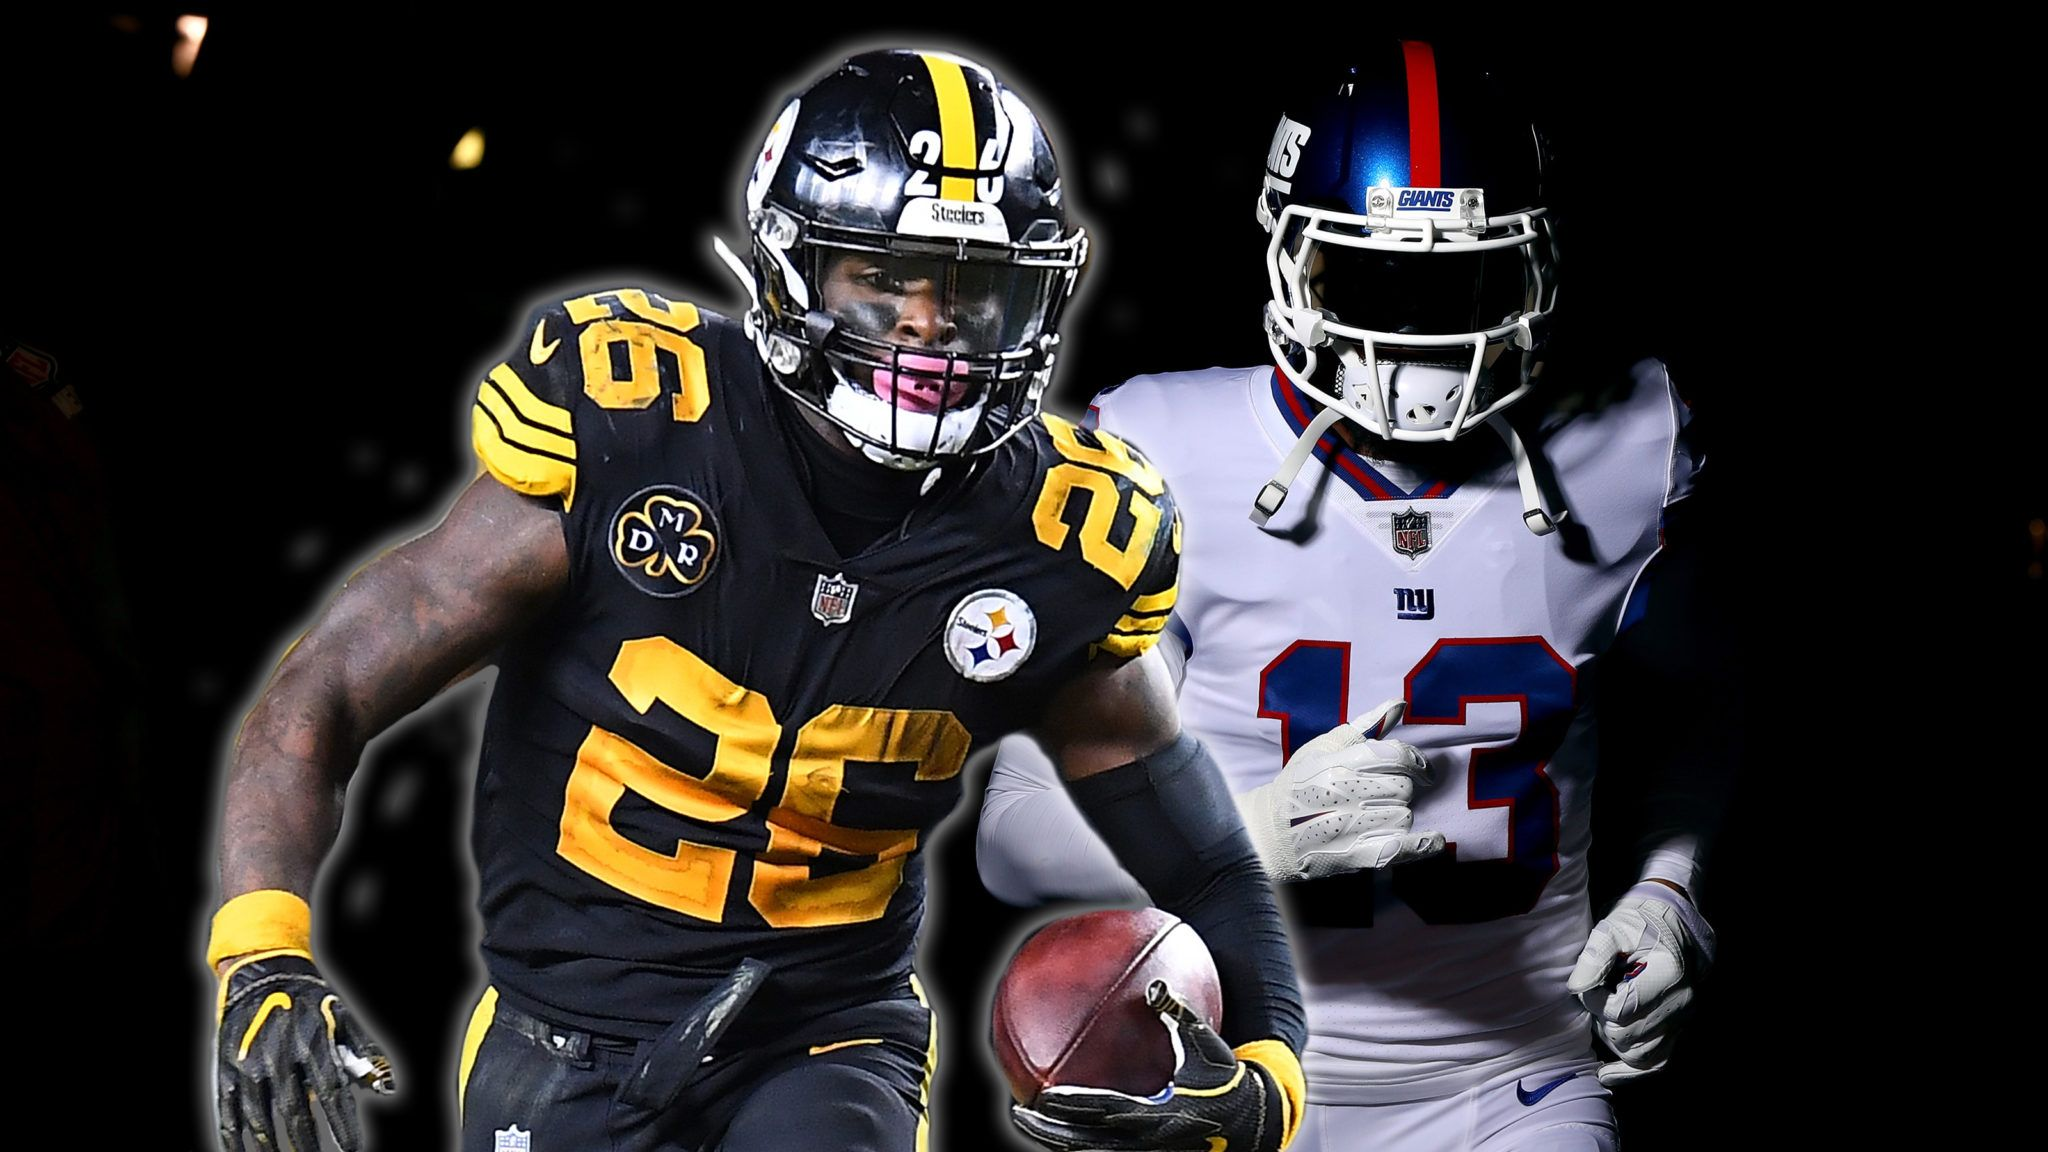 Giants news: Odell Beckham trying to recruit Le'Veon Bell to